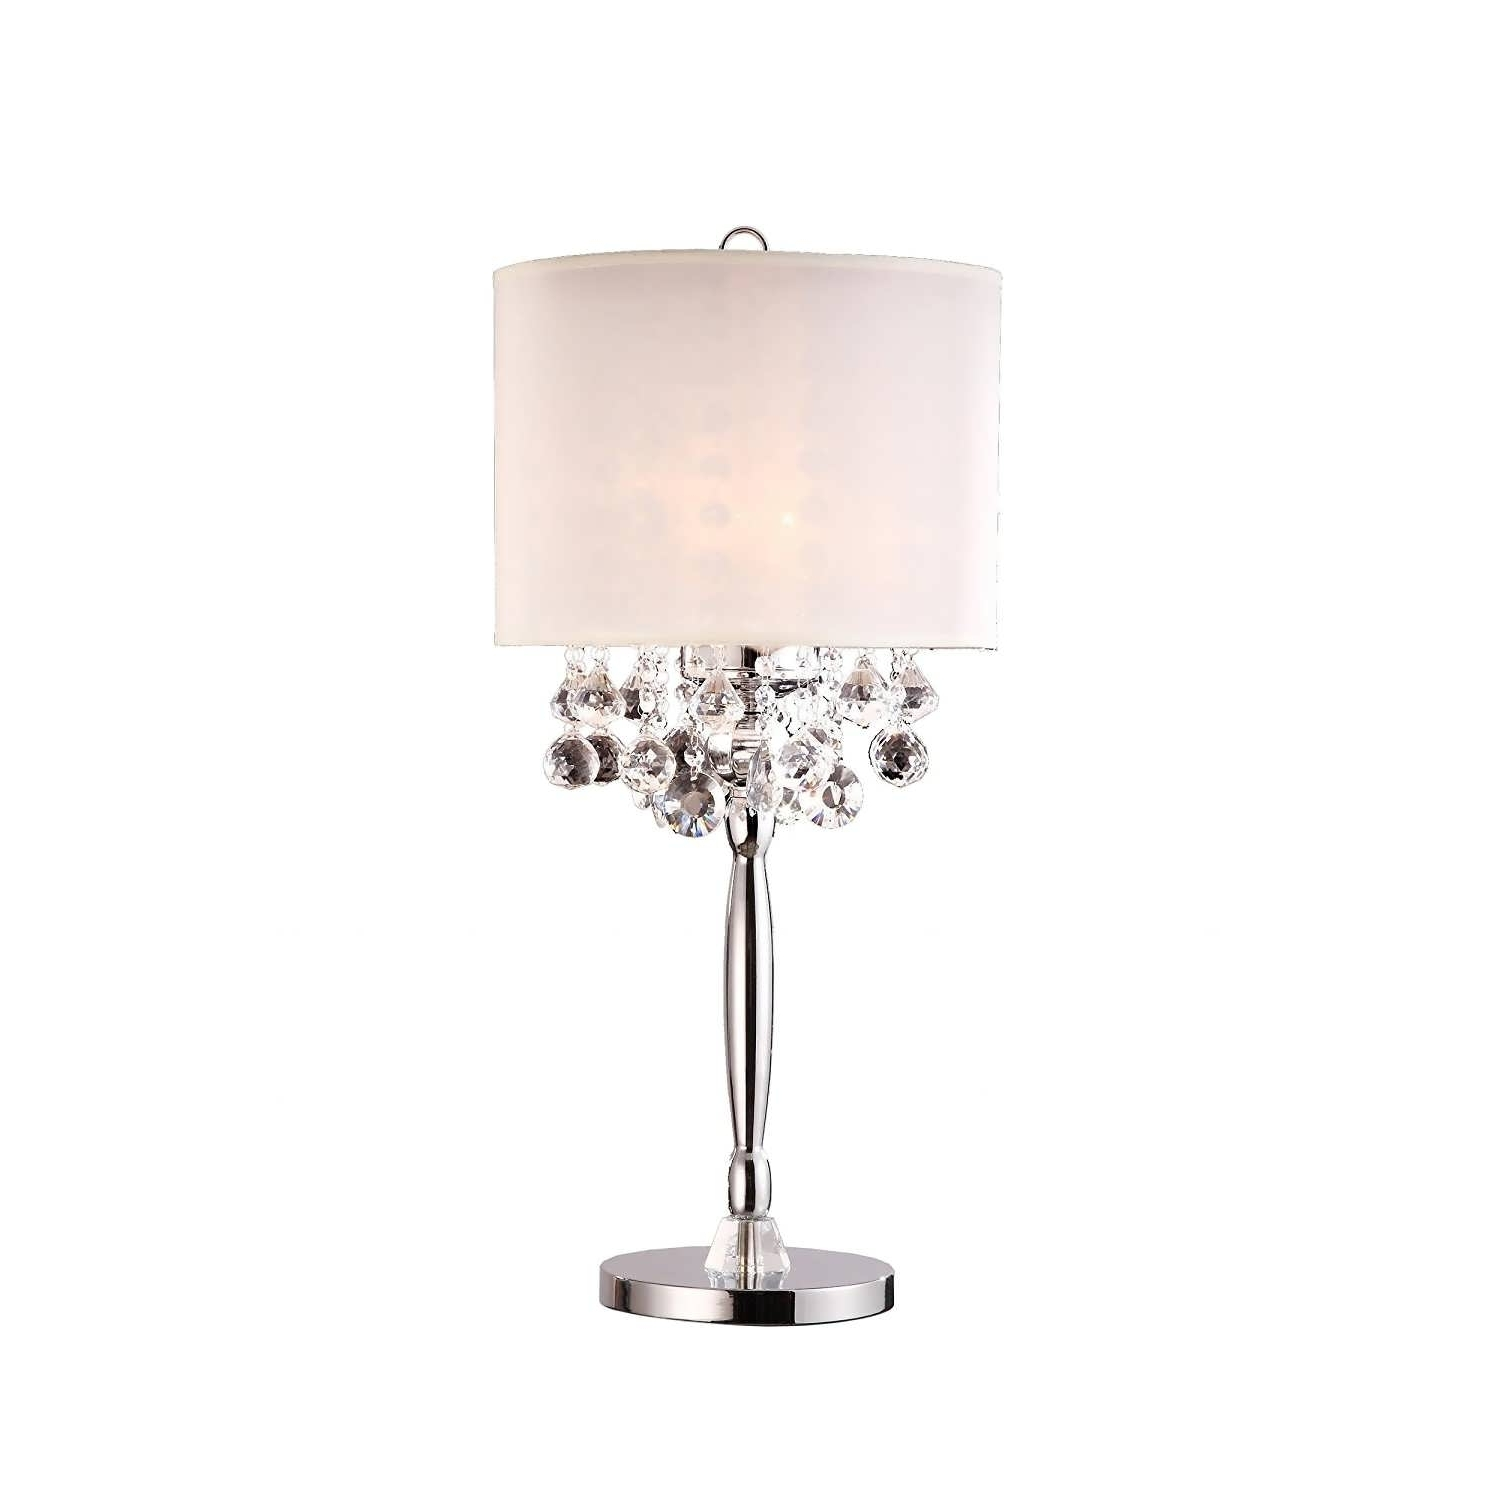 Well Known Small Crystal Chandelier Table Lamps Inside Chandelier : Ceiling Light Fixture Small Table Lamps Crystal (View 14 of 15)